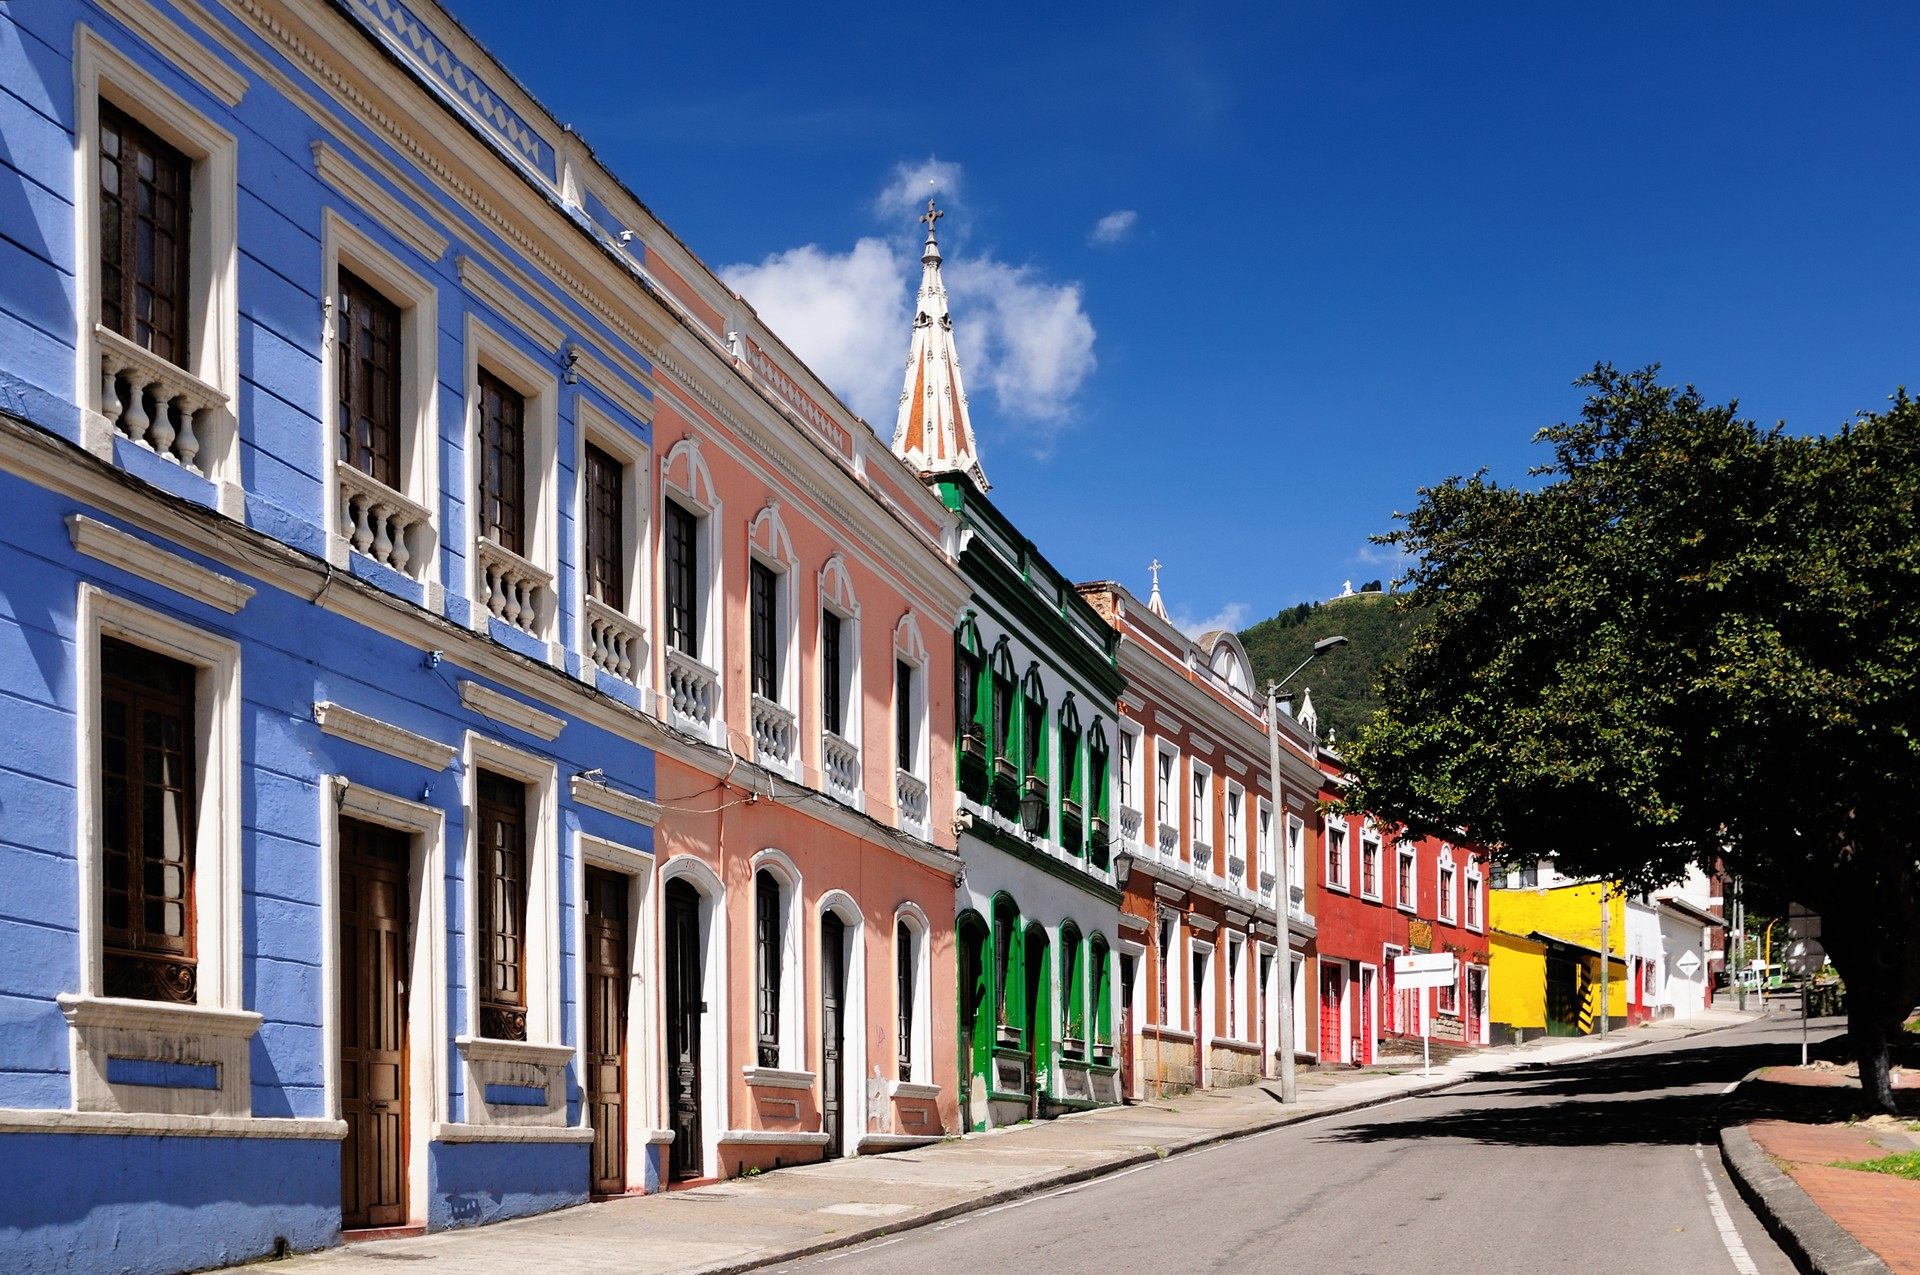 Colourful colonial houses in Bogota, Colombia